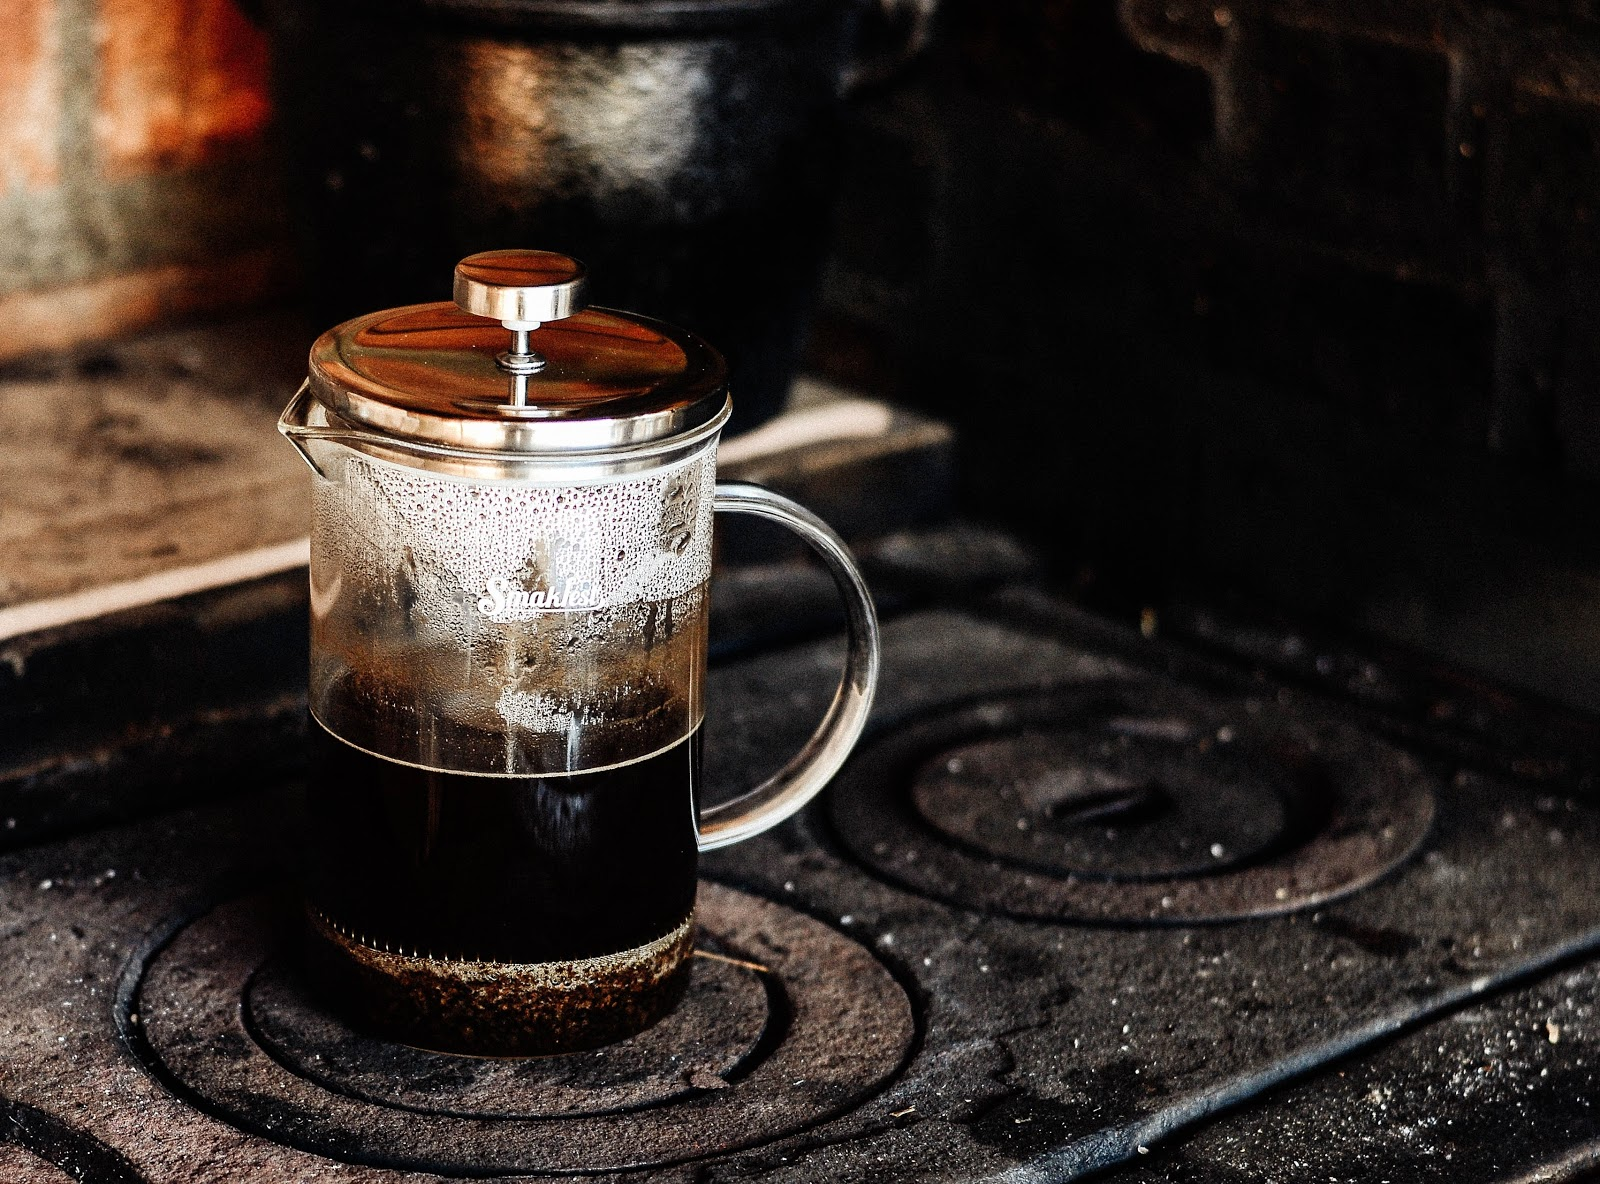 A french press placed on a stovetop